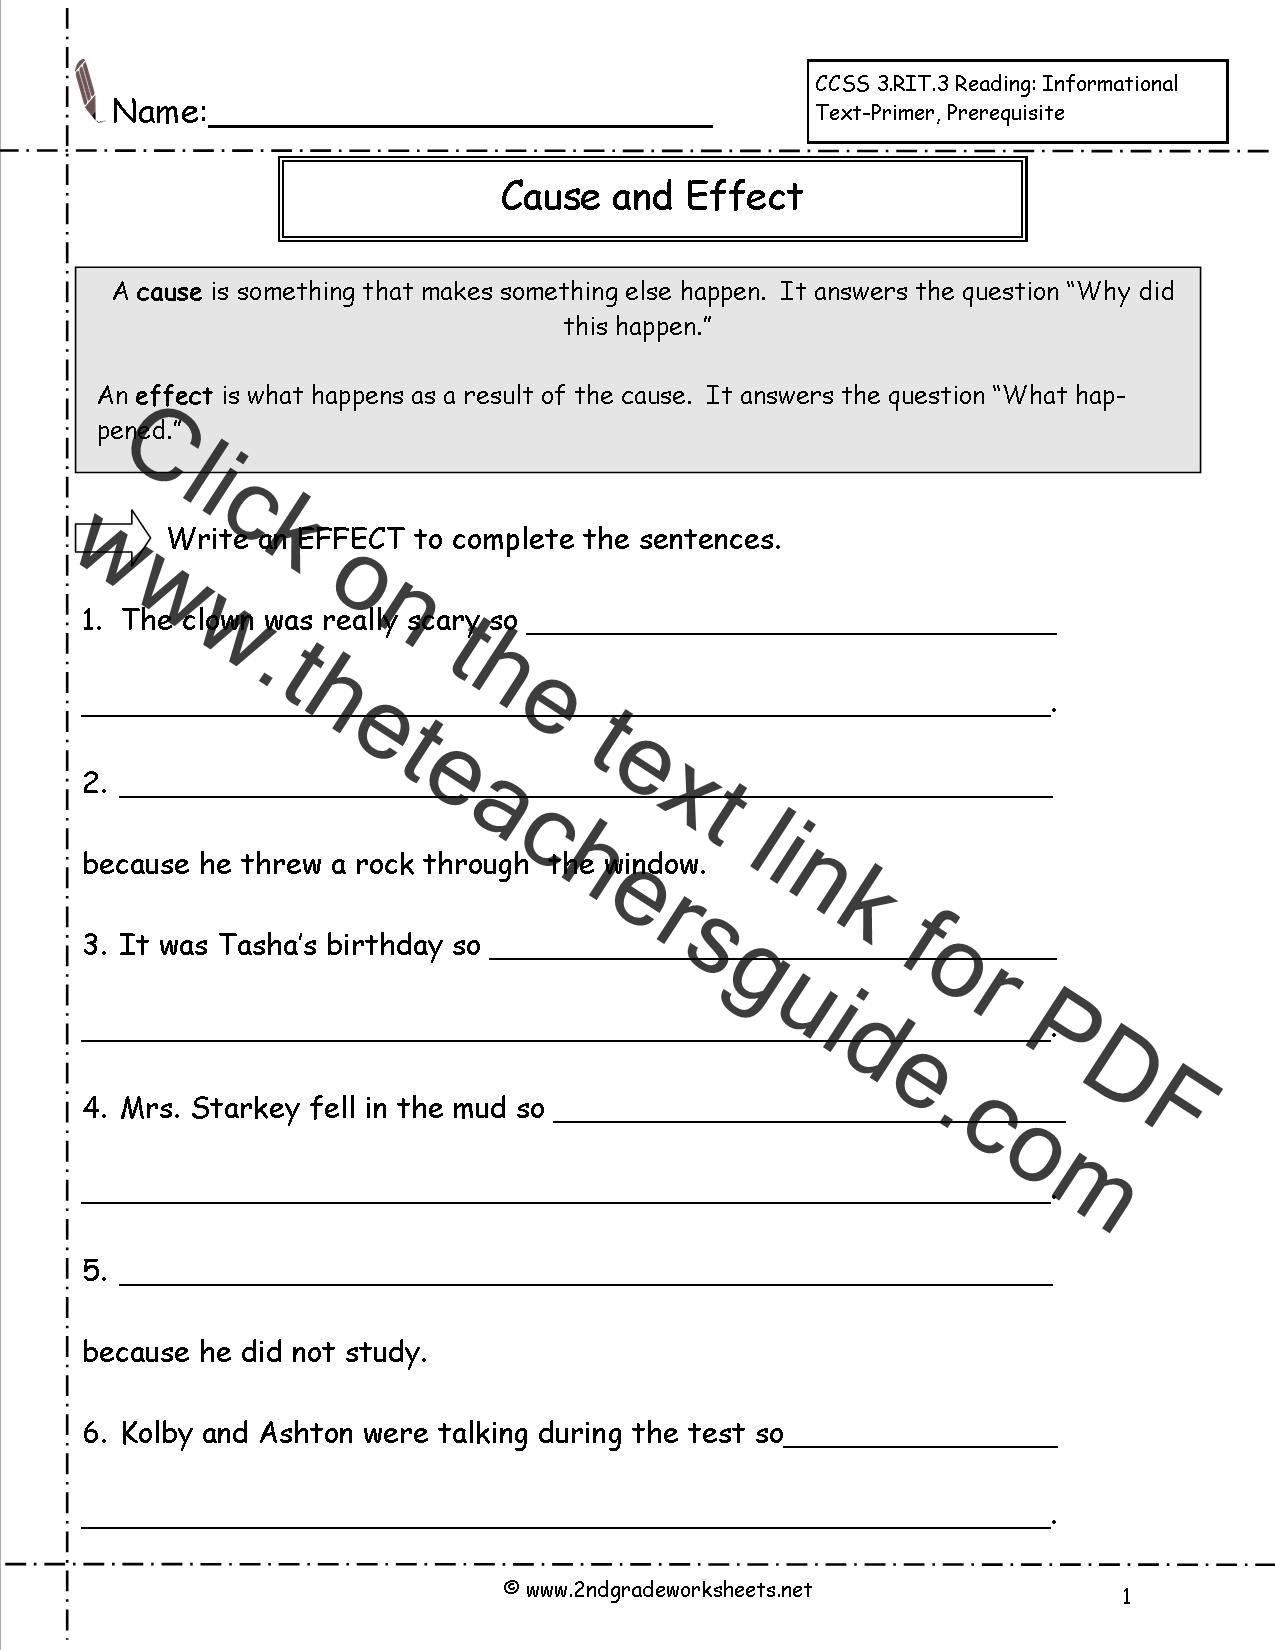 hight resolution of 20 Best Cause And Effect Worksheets images on Worksheets Ideas